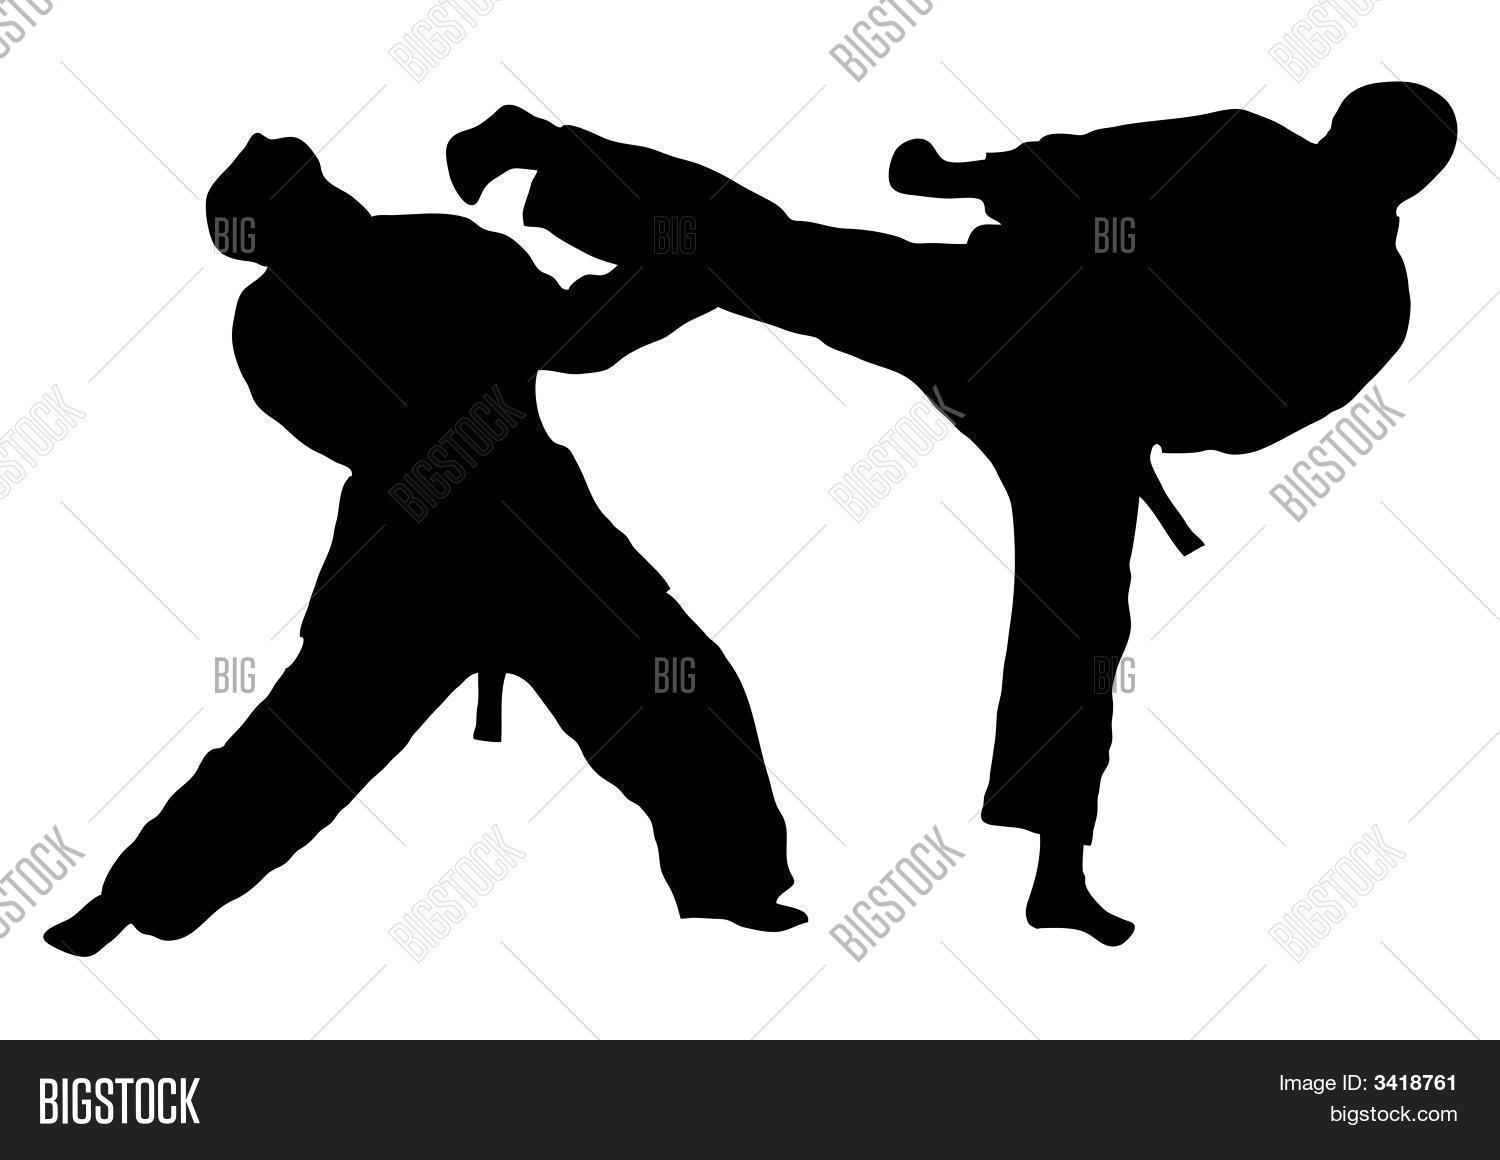 karate fight image photo free trial bigstock